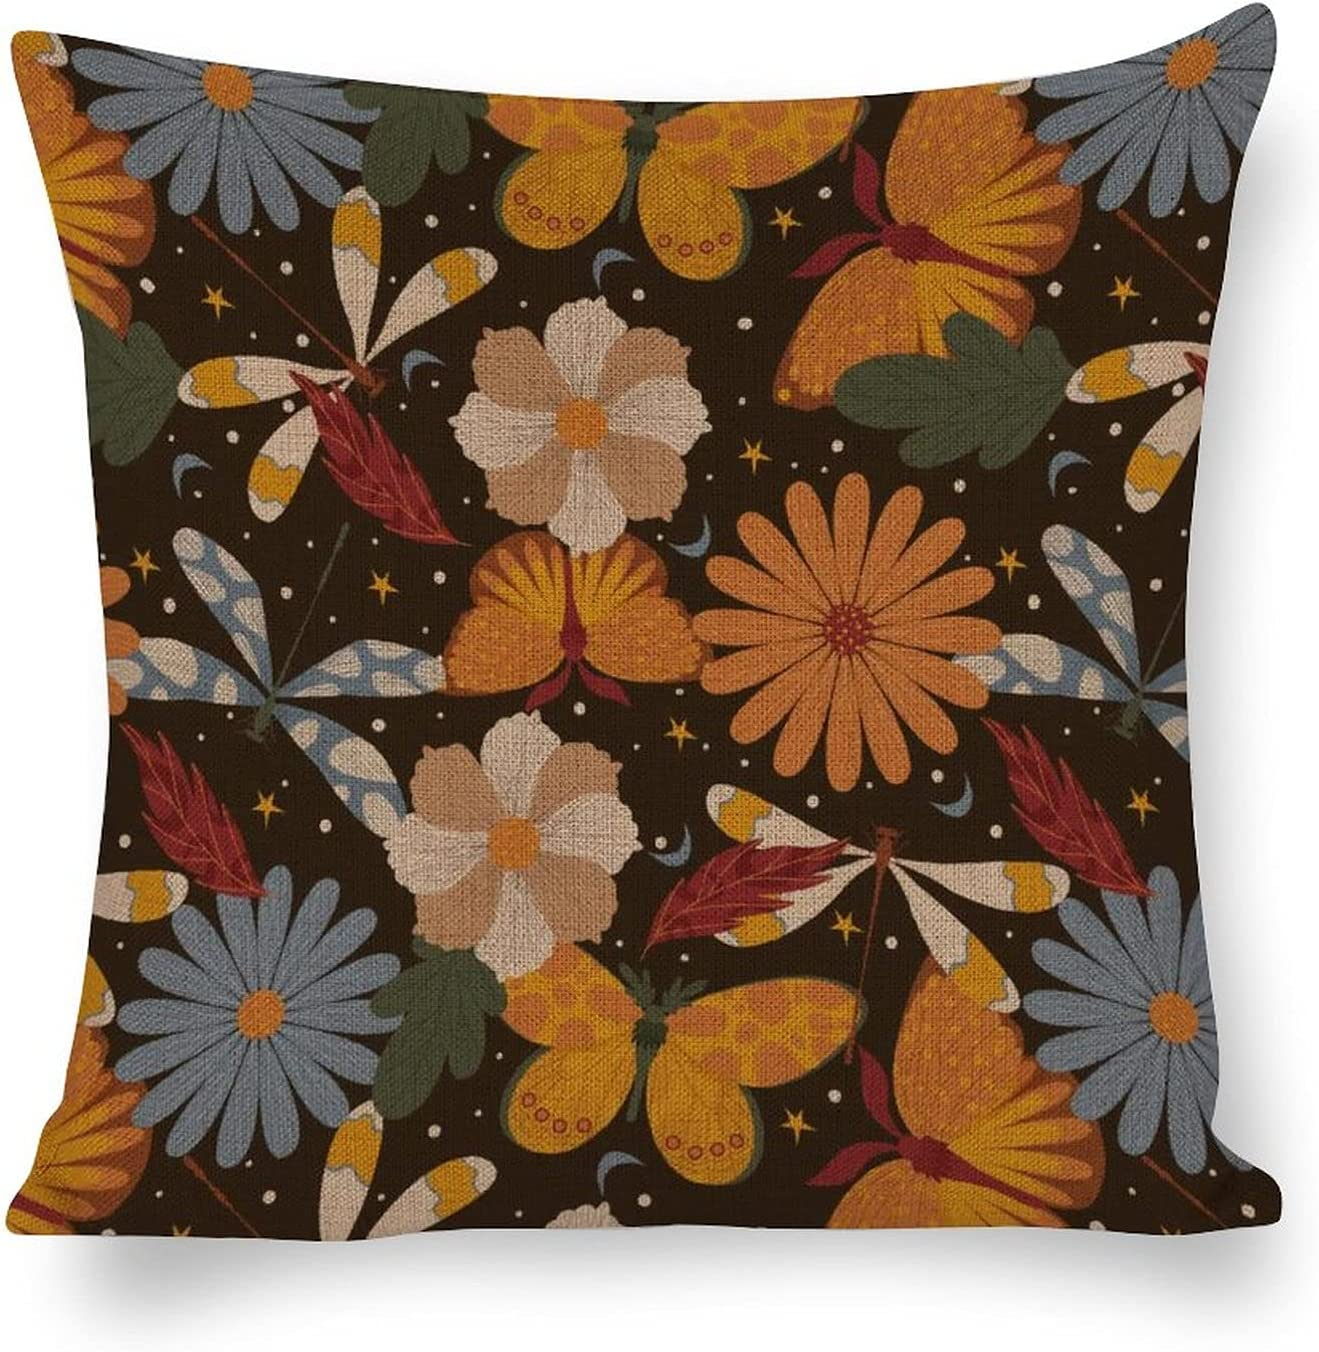 Cotton Linen Pillow Covers Insects Flowers Home Financial sales sale Decorati Pattern New item